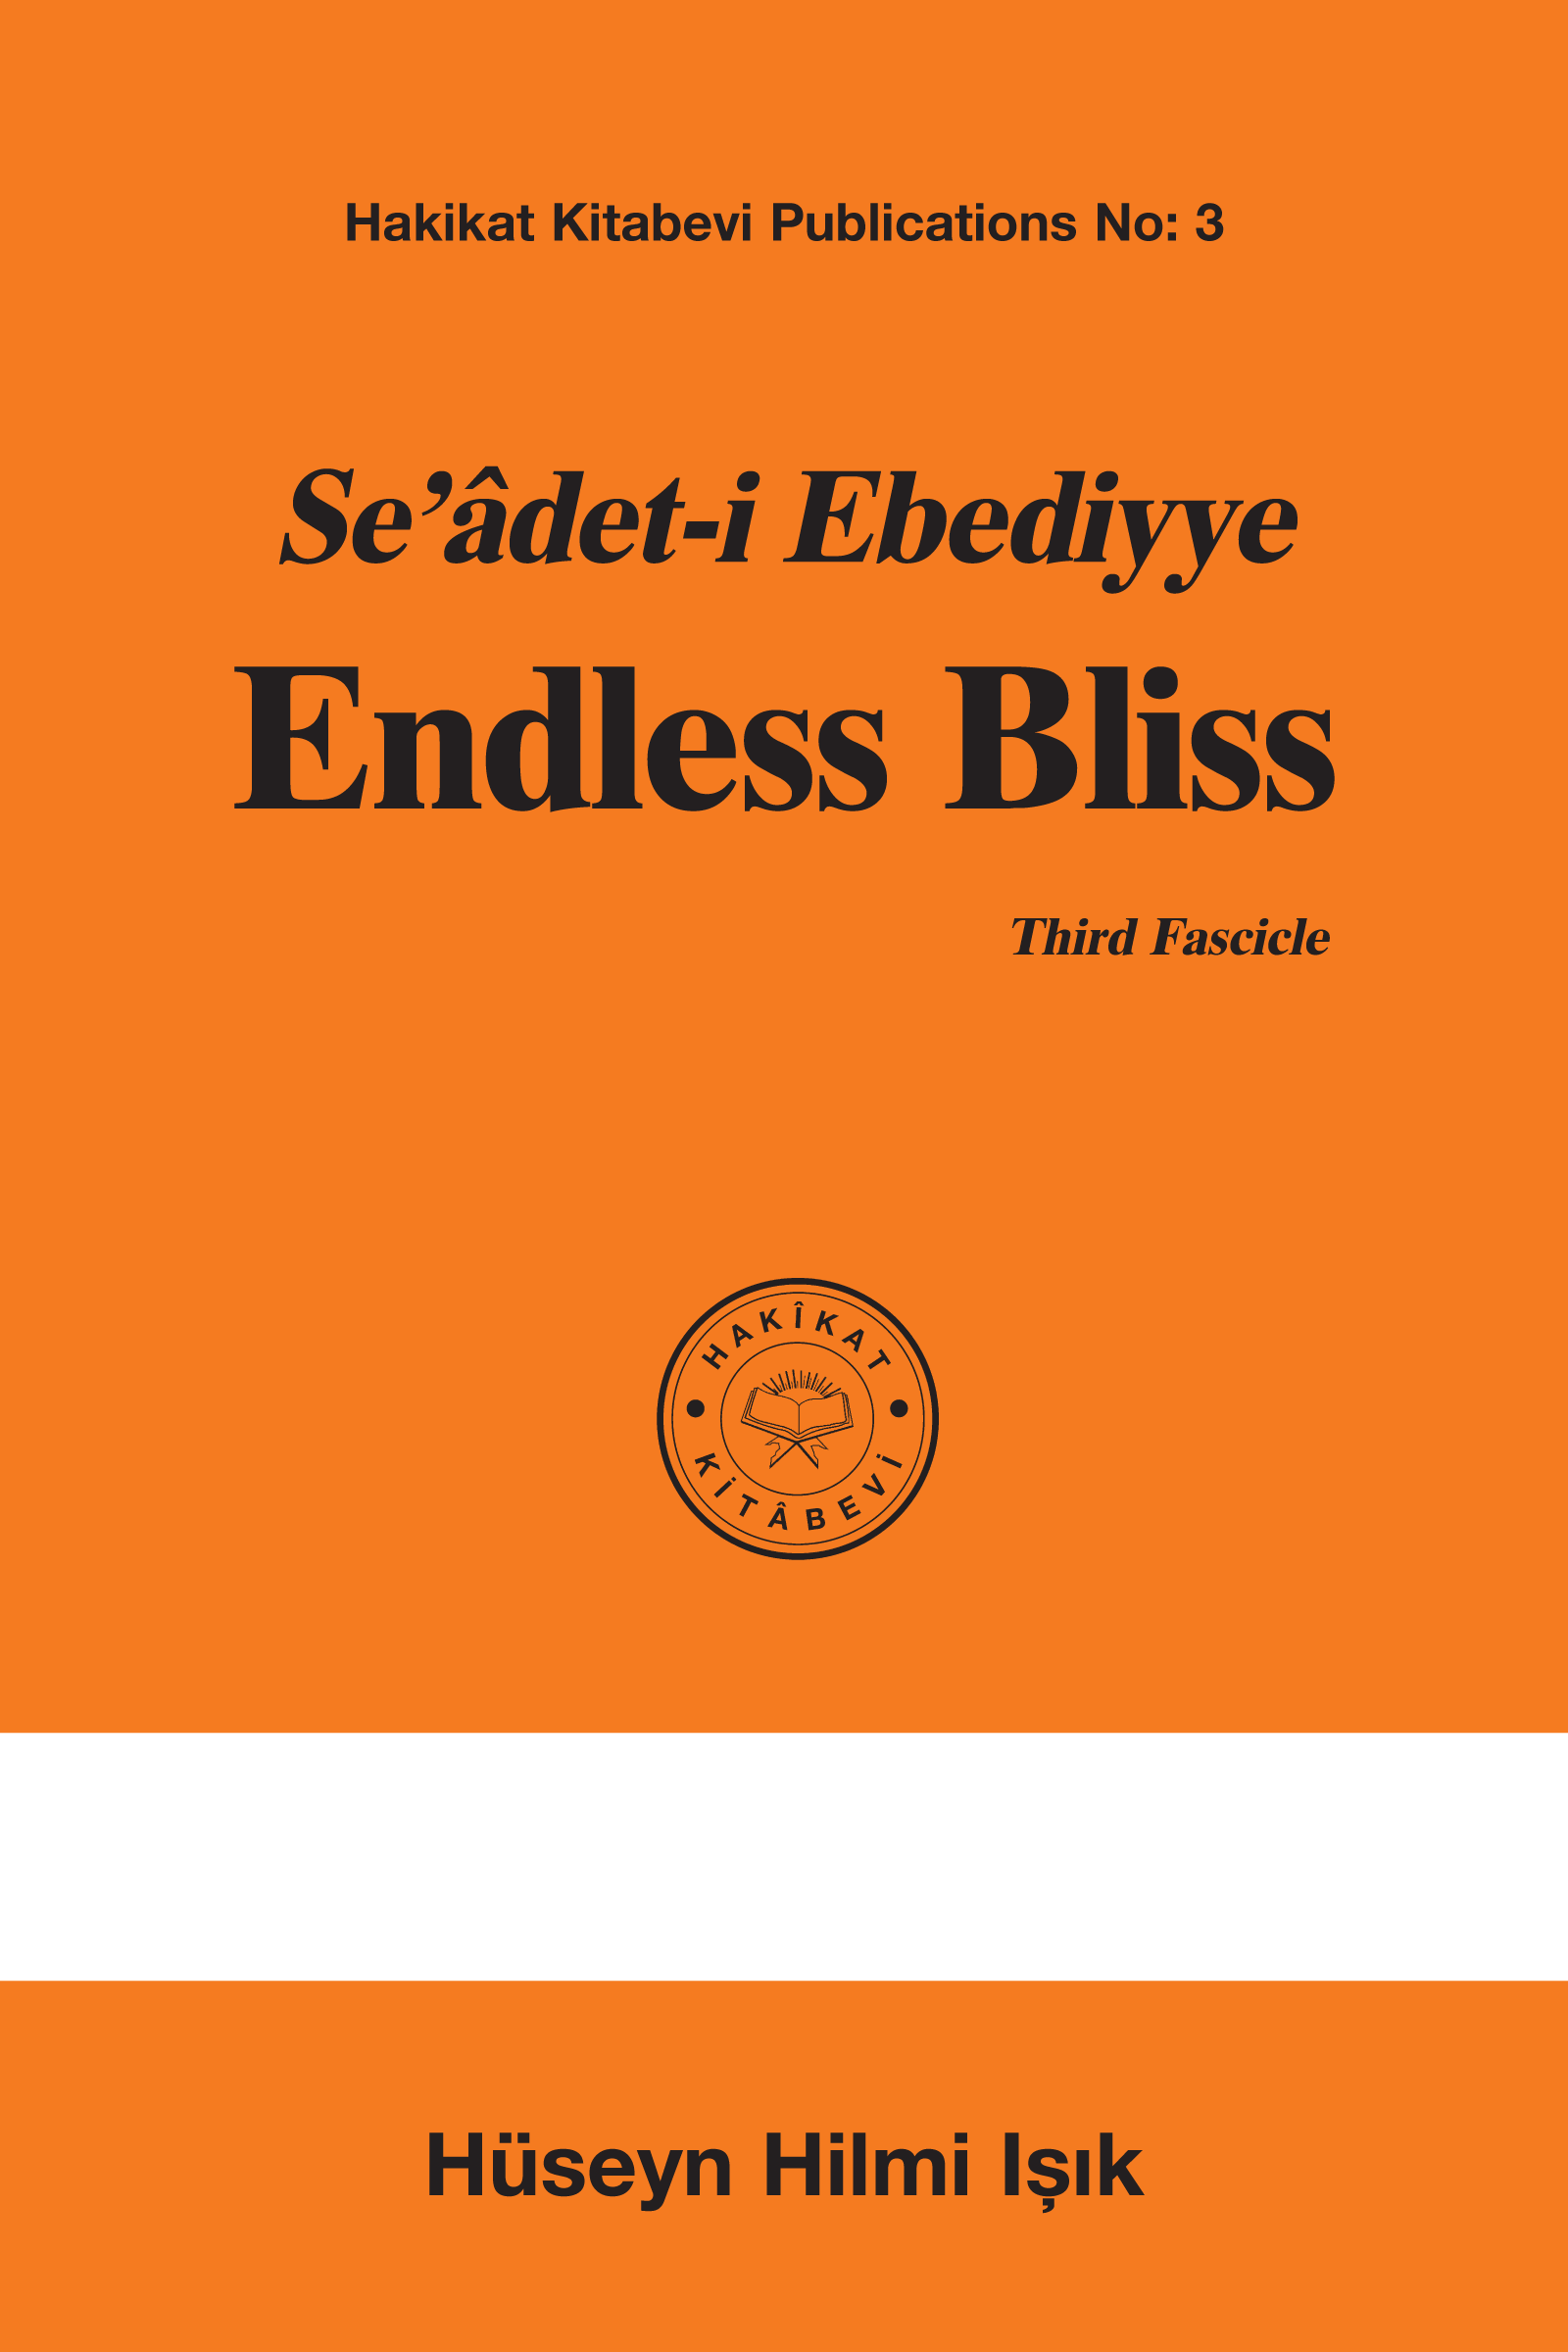 Endless Bliss Third Fascicle